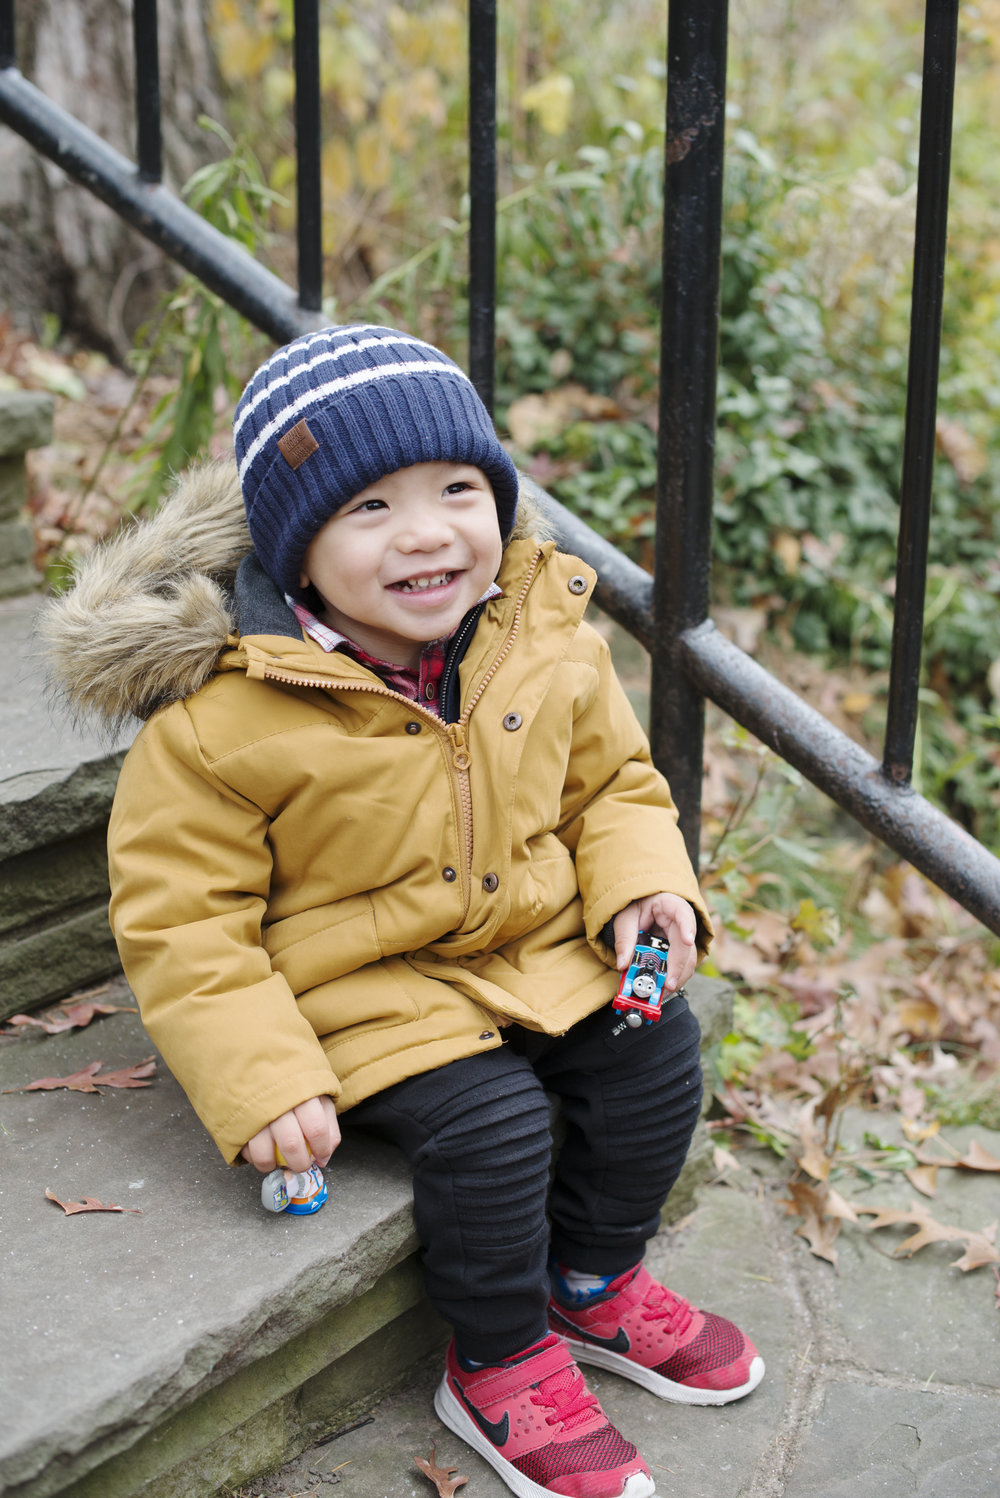 RosewoodWeddingPhotos-HighPark-Family-WinterFamilyPhotos-TorontoFamilyphotographer-filipinoFamily-Toddler-StylishKids